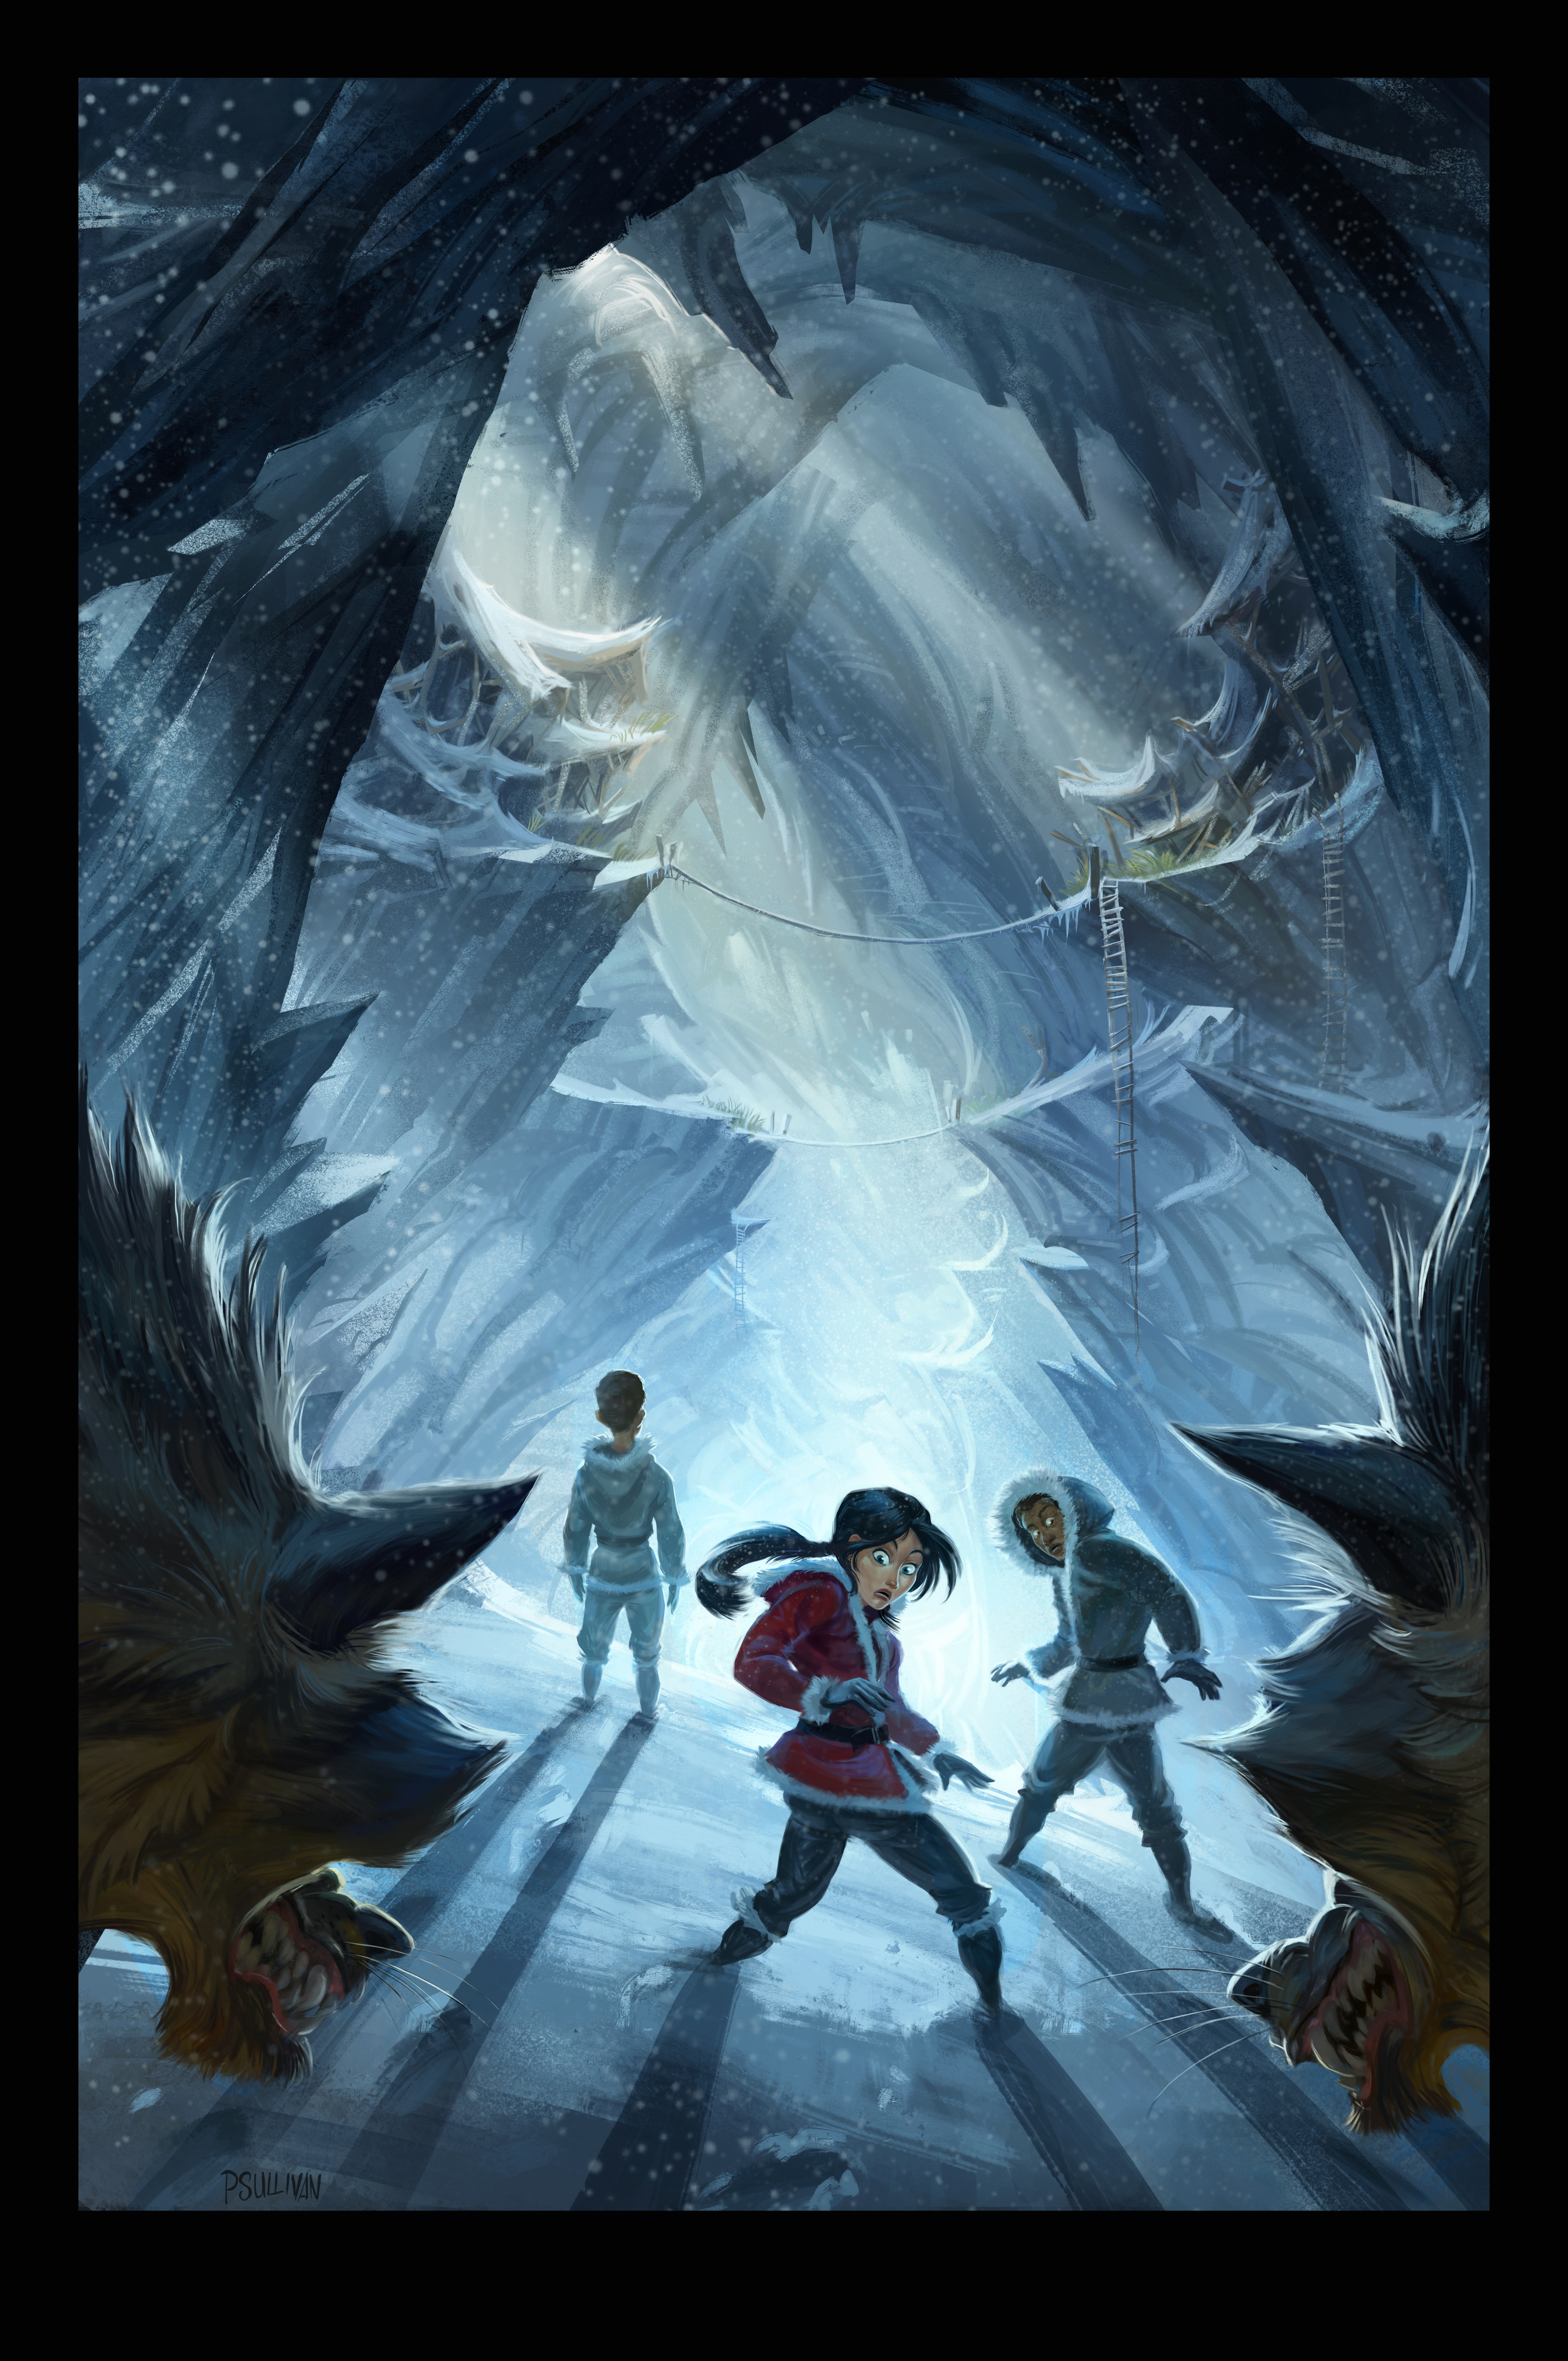 Arctic Code Cover art by Paul Sullivan published by Harper Collins